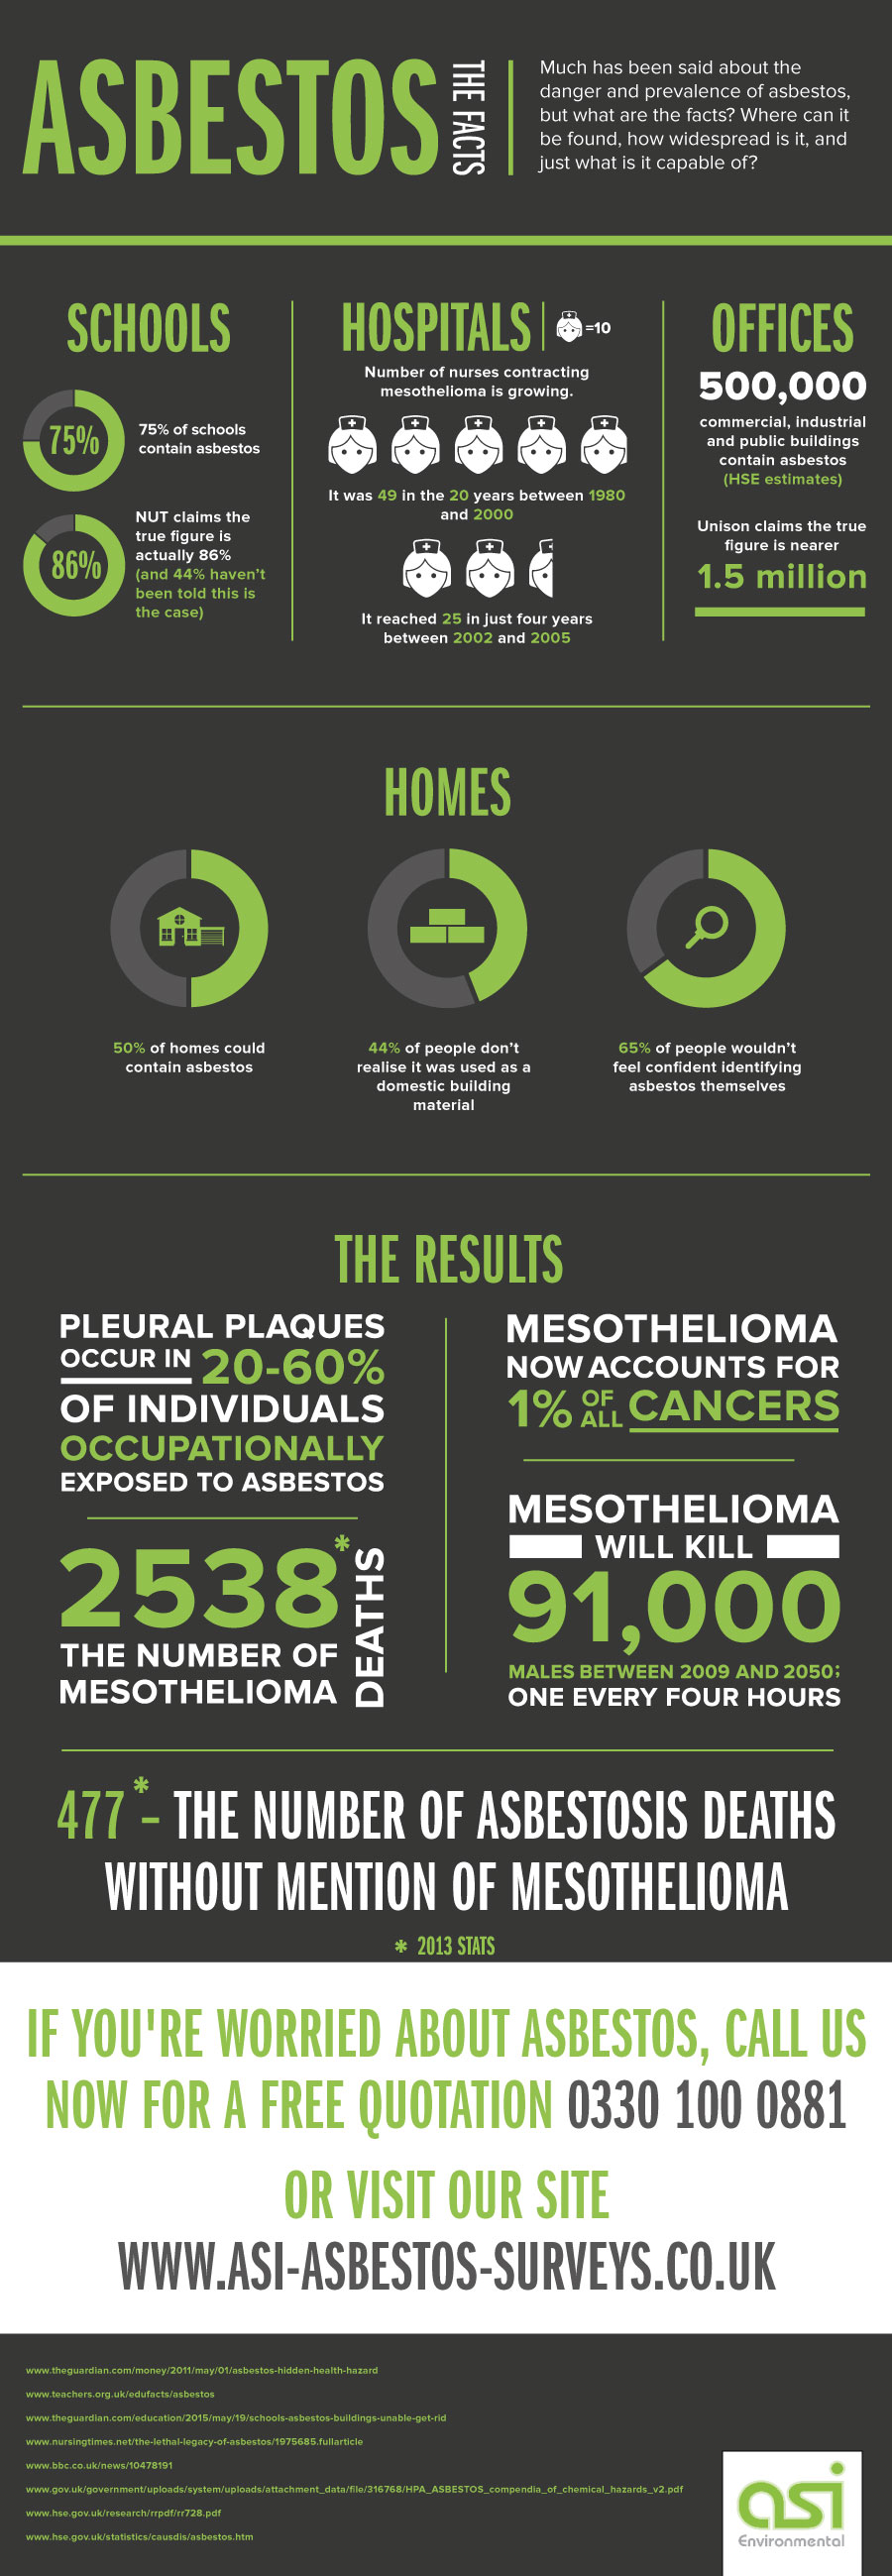 Asbestos - The Facts infographic